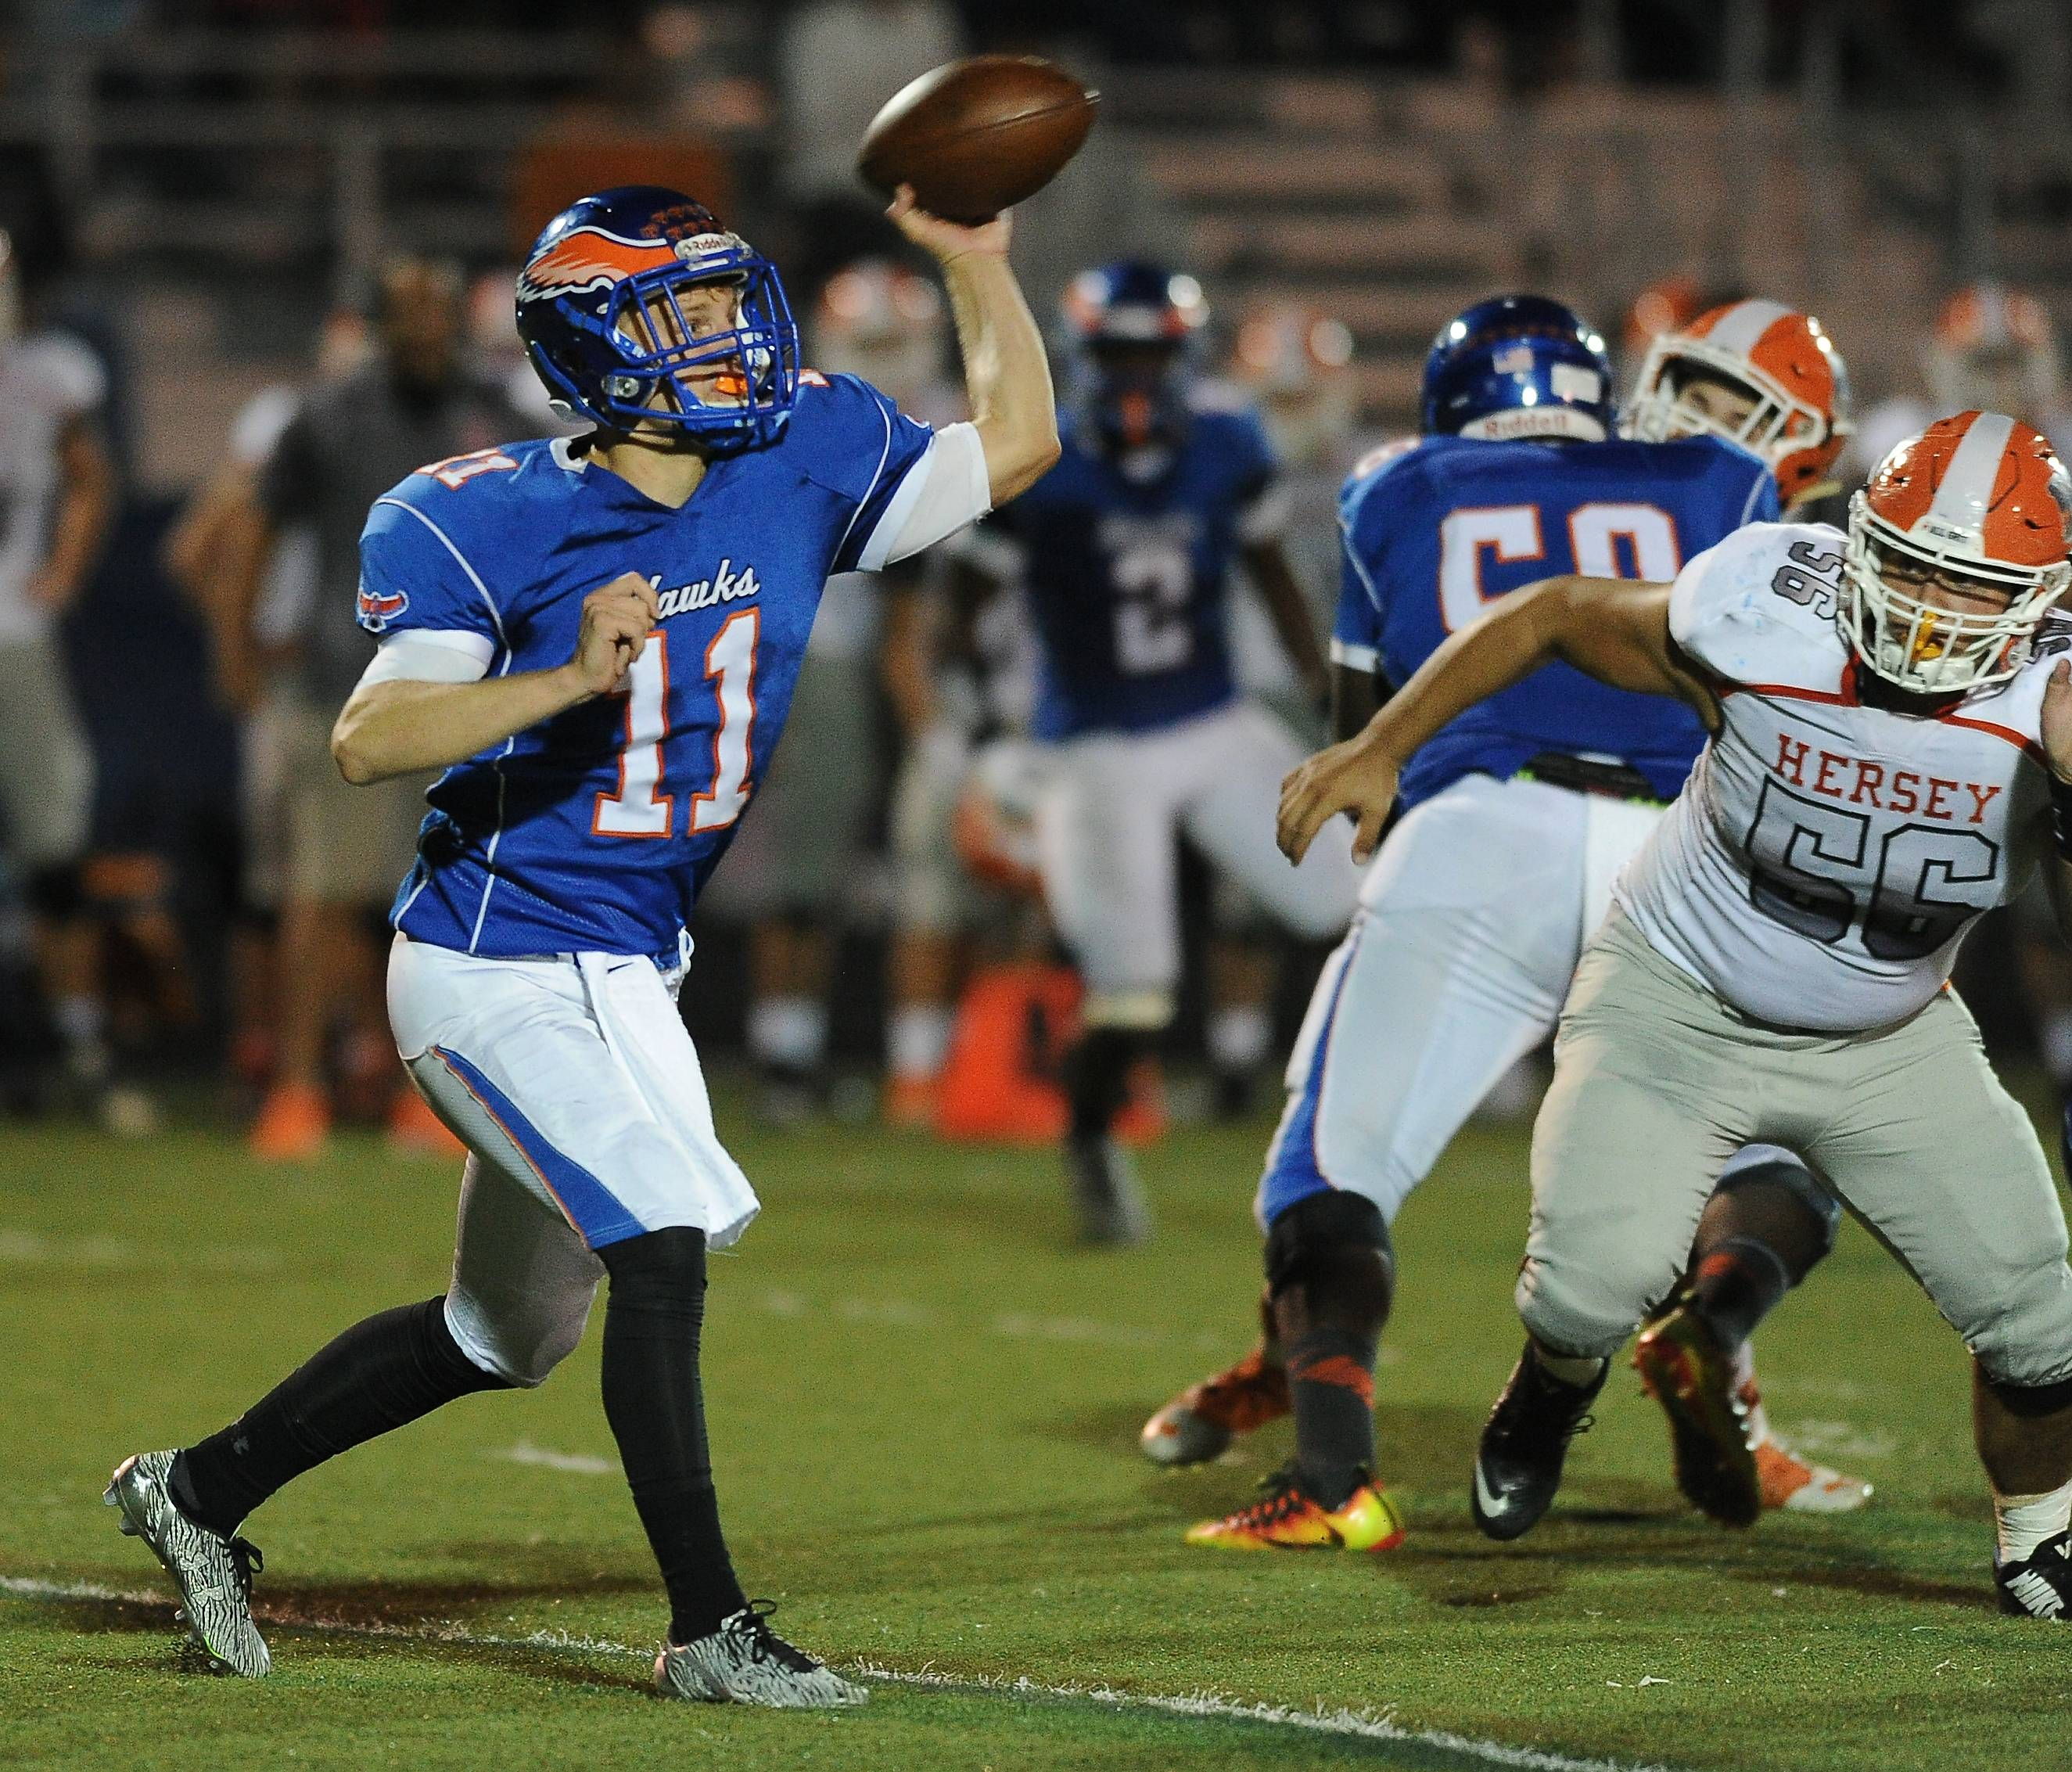 Hoffman Estates quarterback Austin Coalson delivers to his receiver in the first half Friday against visiting Hersey.